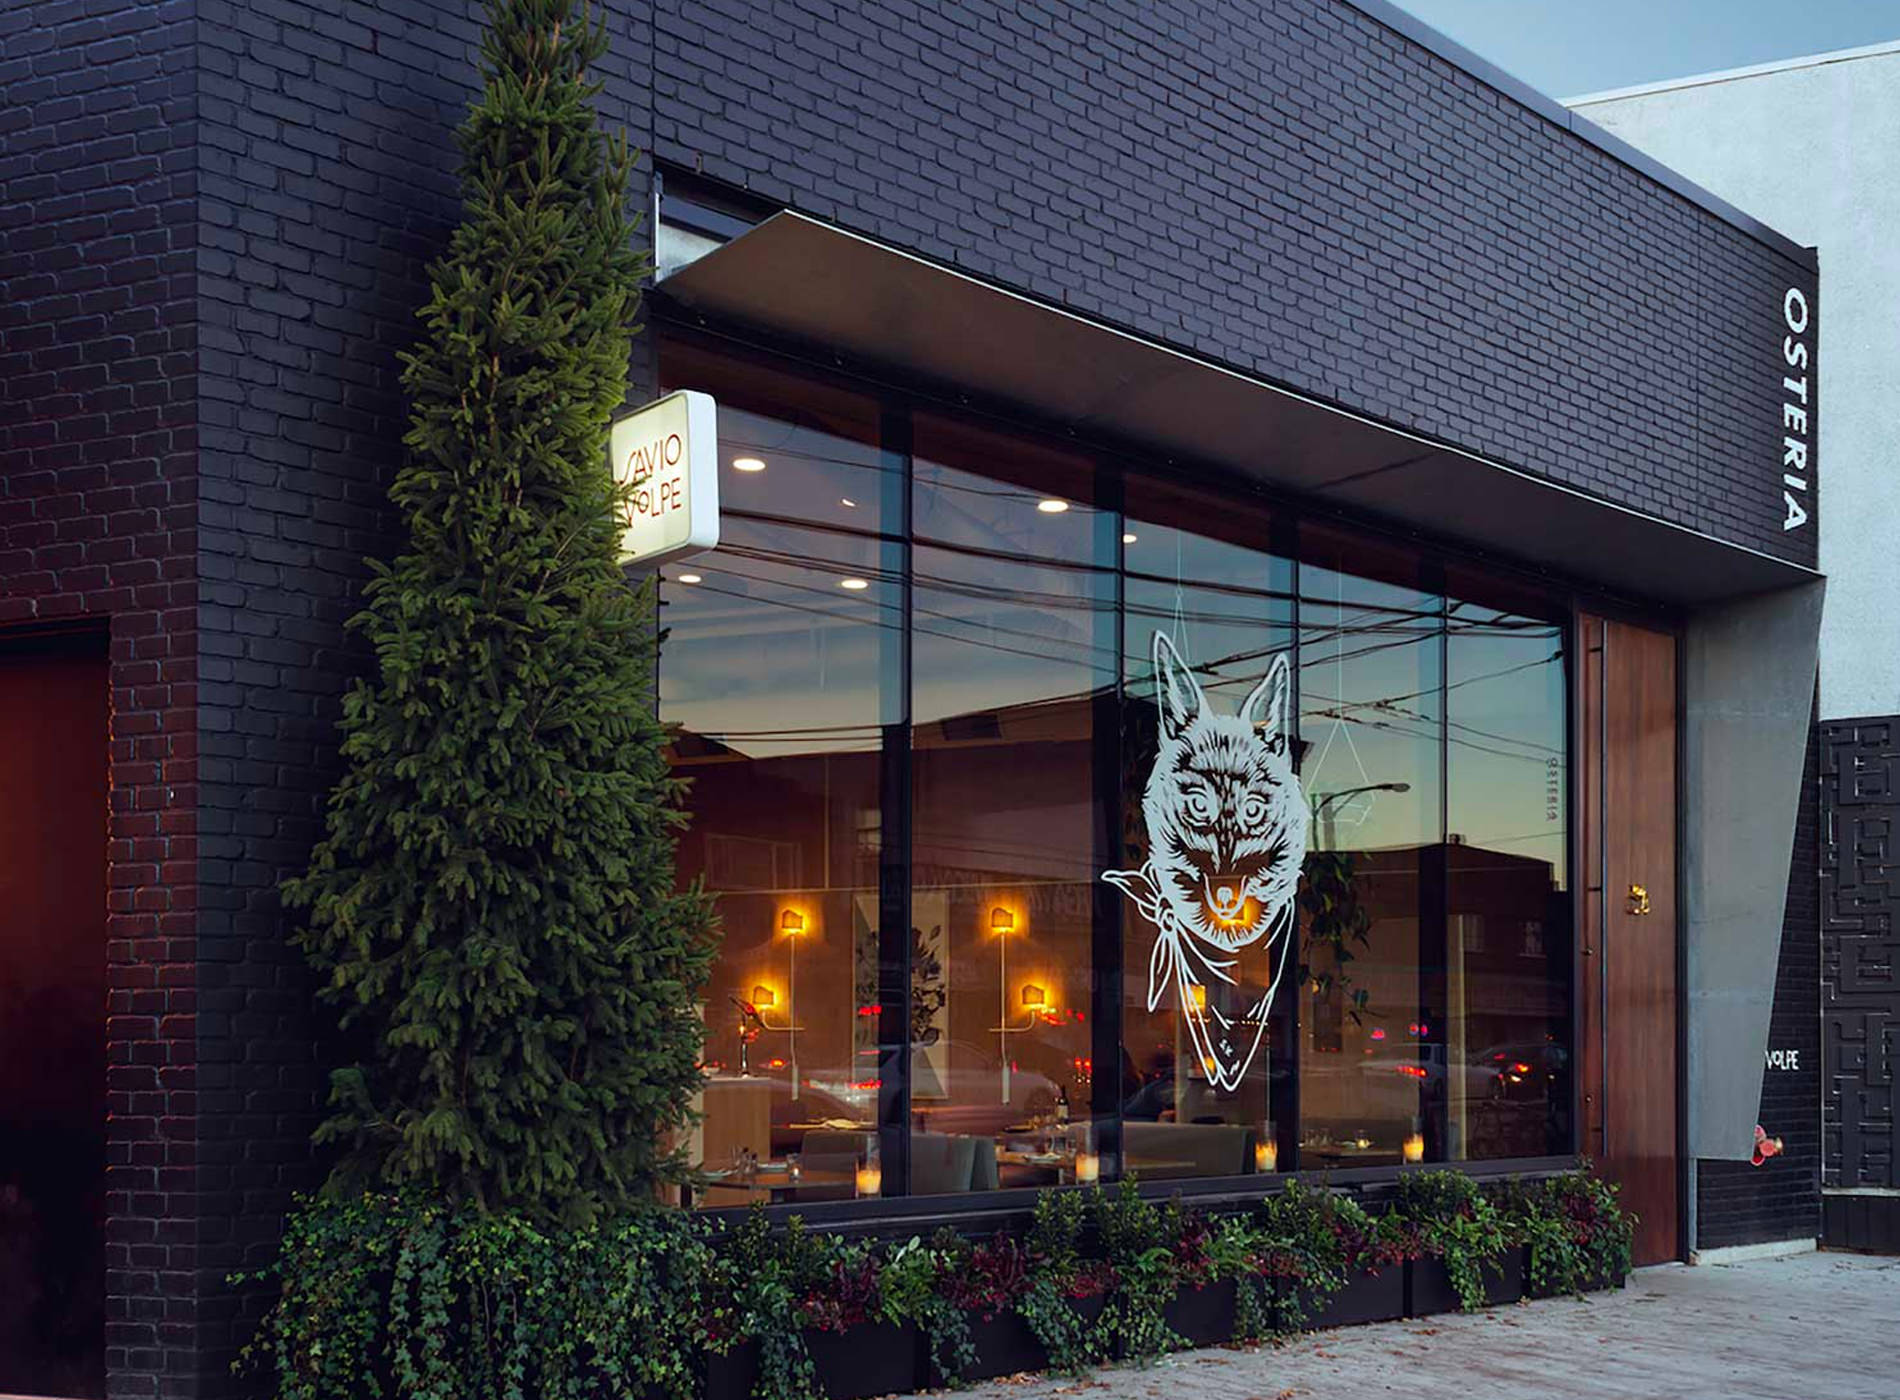 City Guide Vancouver Mount Pleasant Savio Volpe Osteria Restaurant